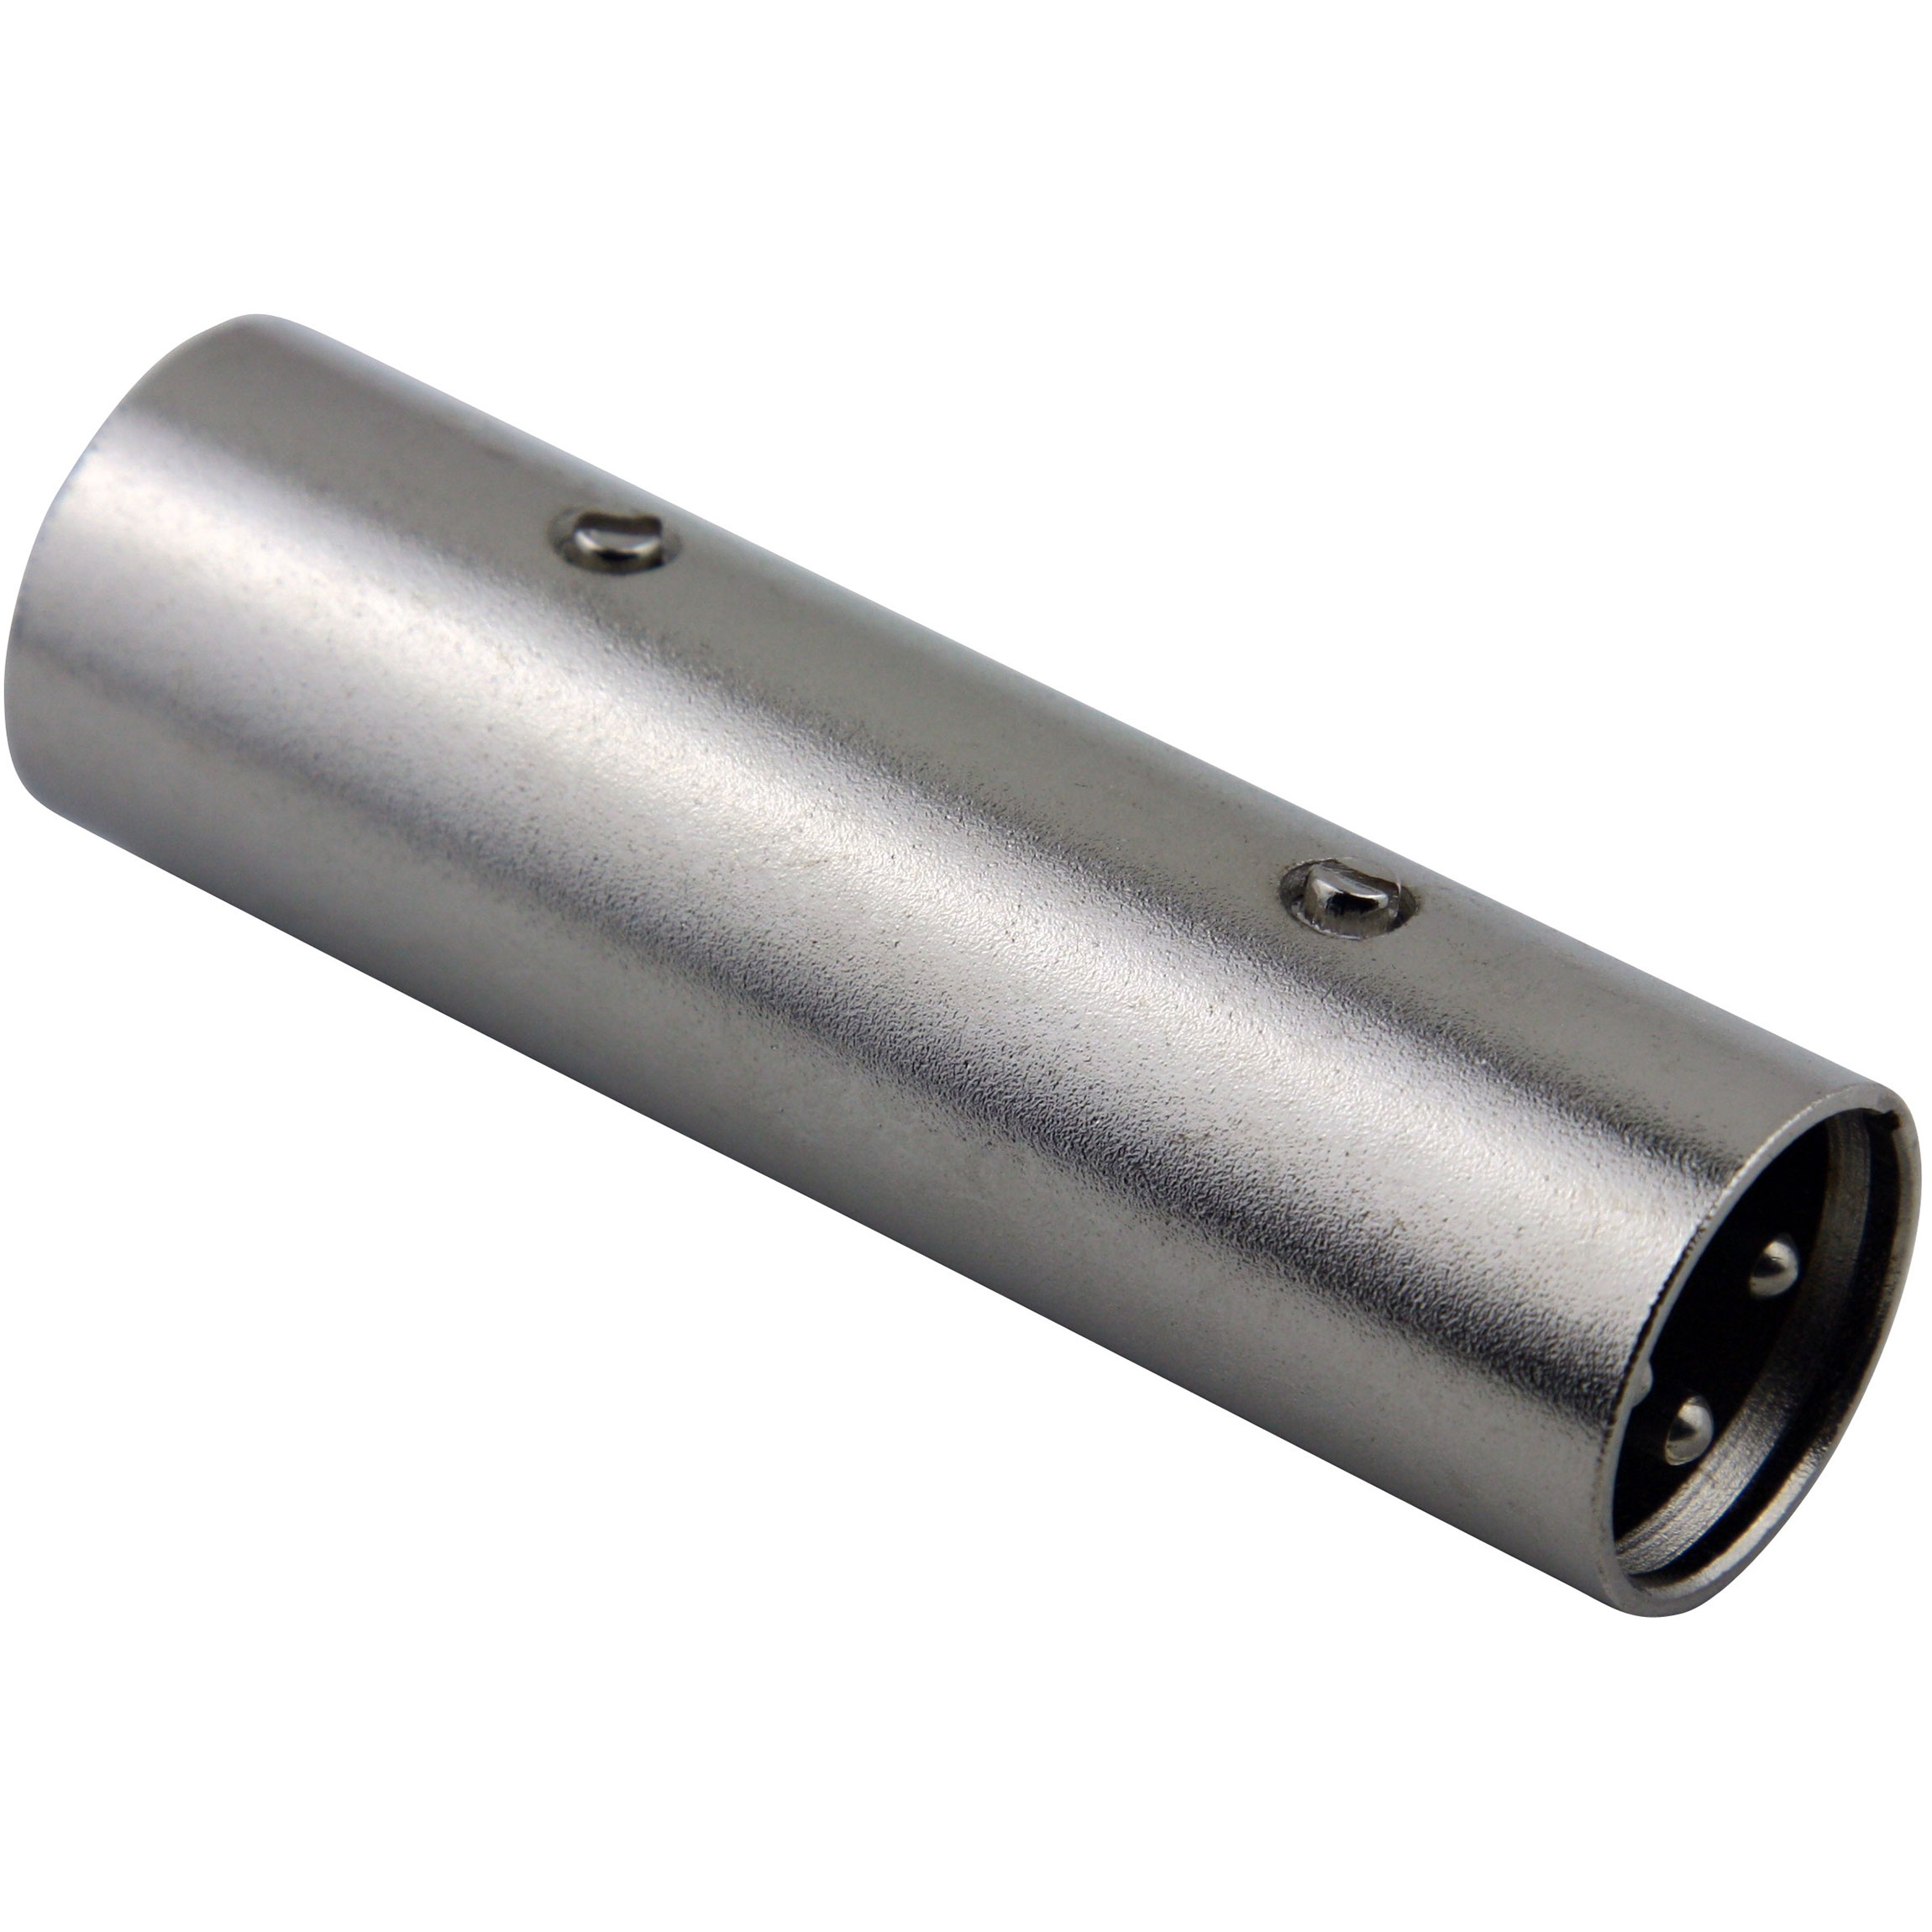 Pig Hog Solutions Male XLR to Male XLR Balanced Adapter